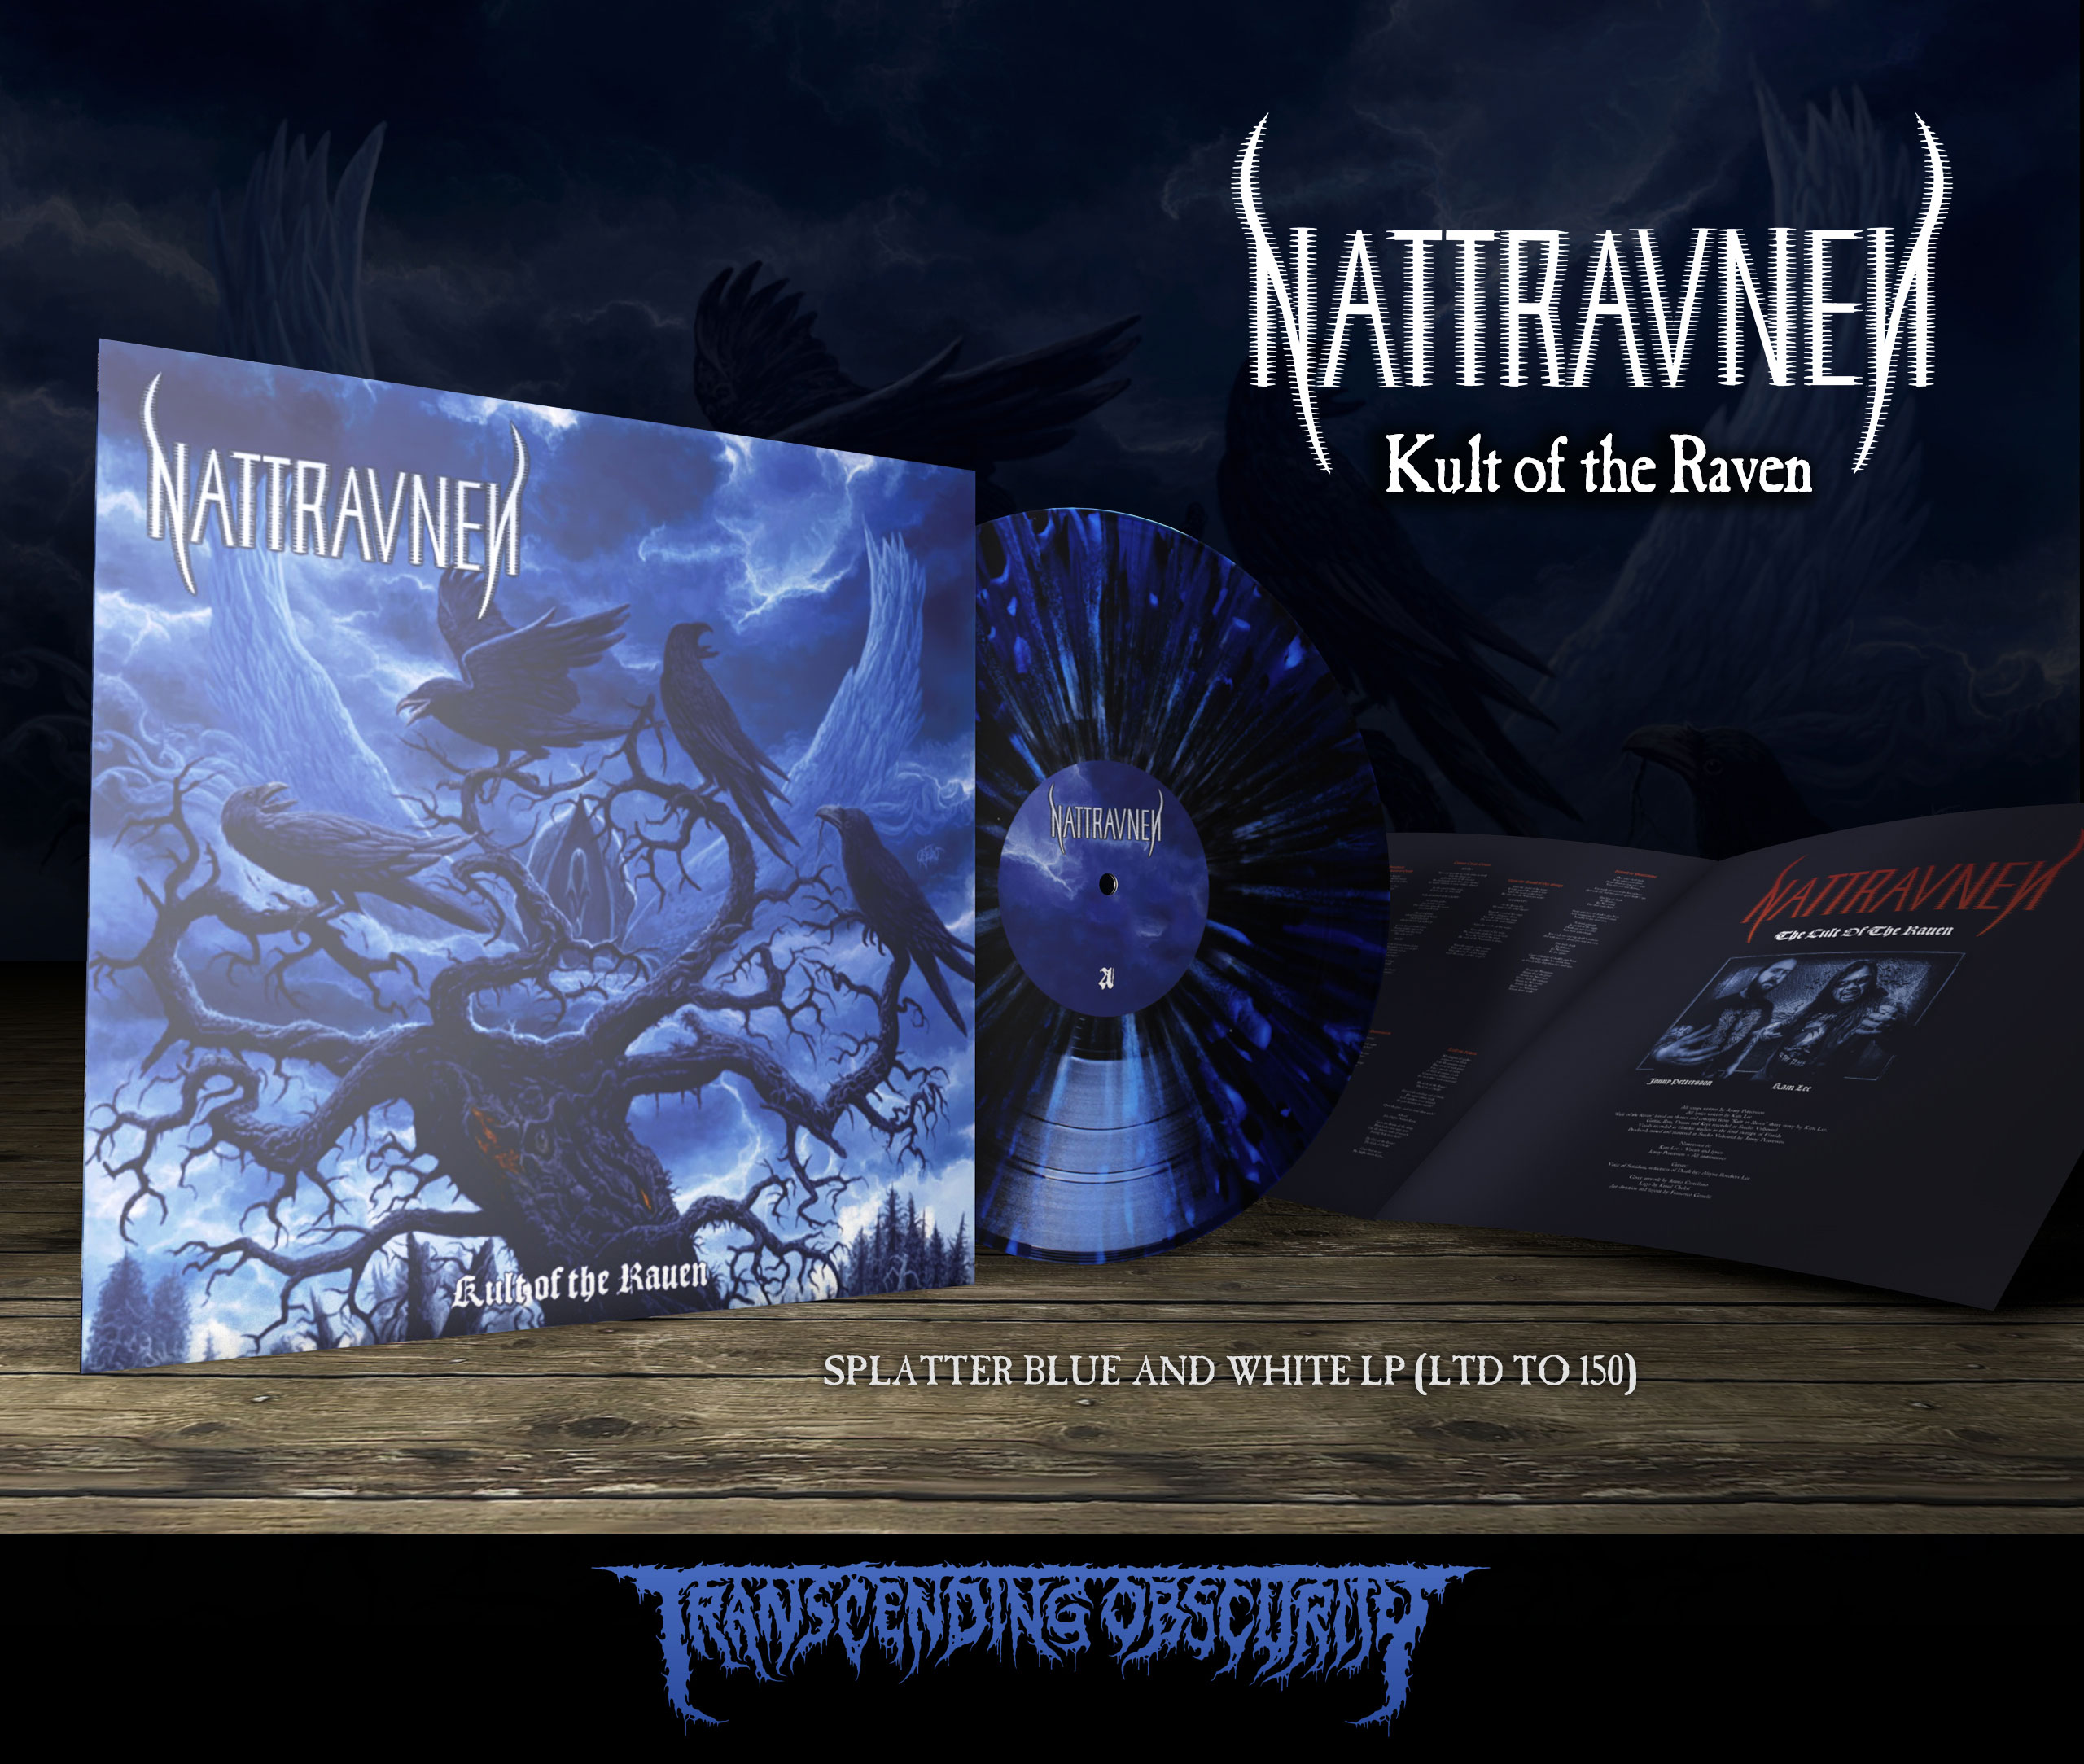 NATTRAVNEN (US/UK) - 'Kult of the Raven' Dark Blue and White Splatter LP with 4-Page Story Booklet